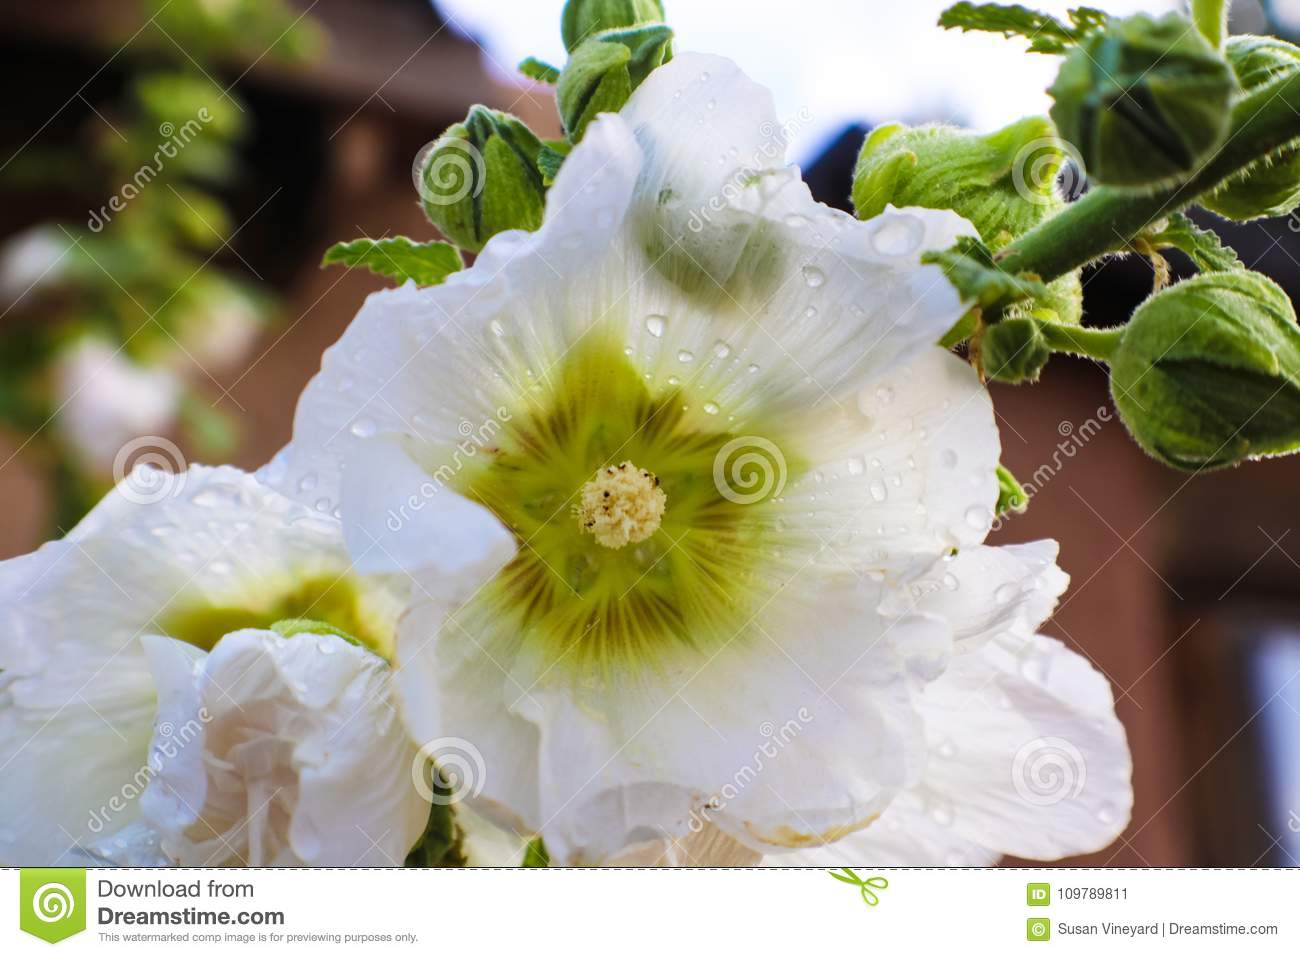 After the rain - Closeup of wet white hollyhock blossom with petals almost transparent and green kaleidoscope center - selective f